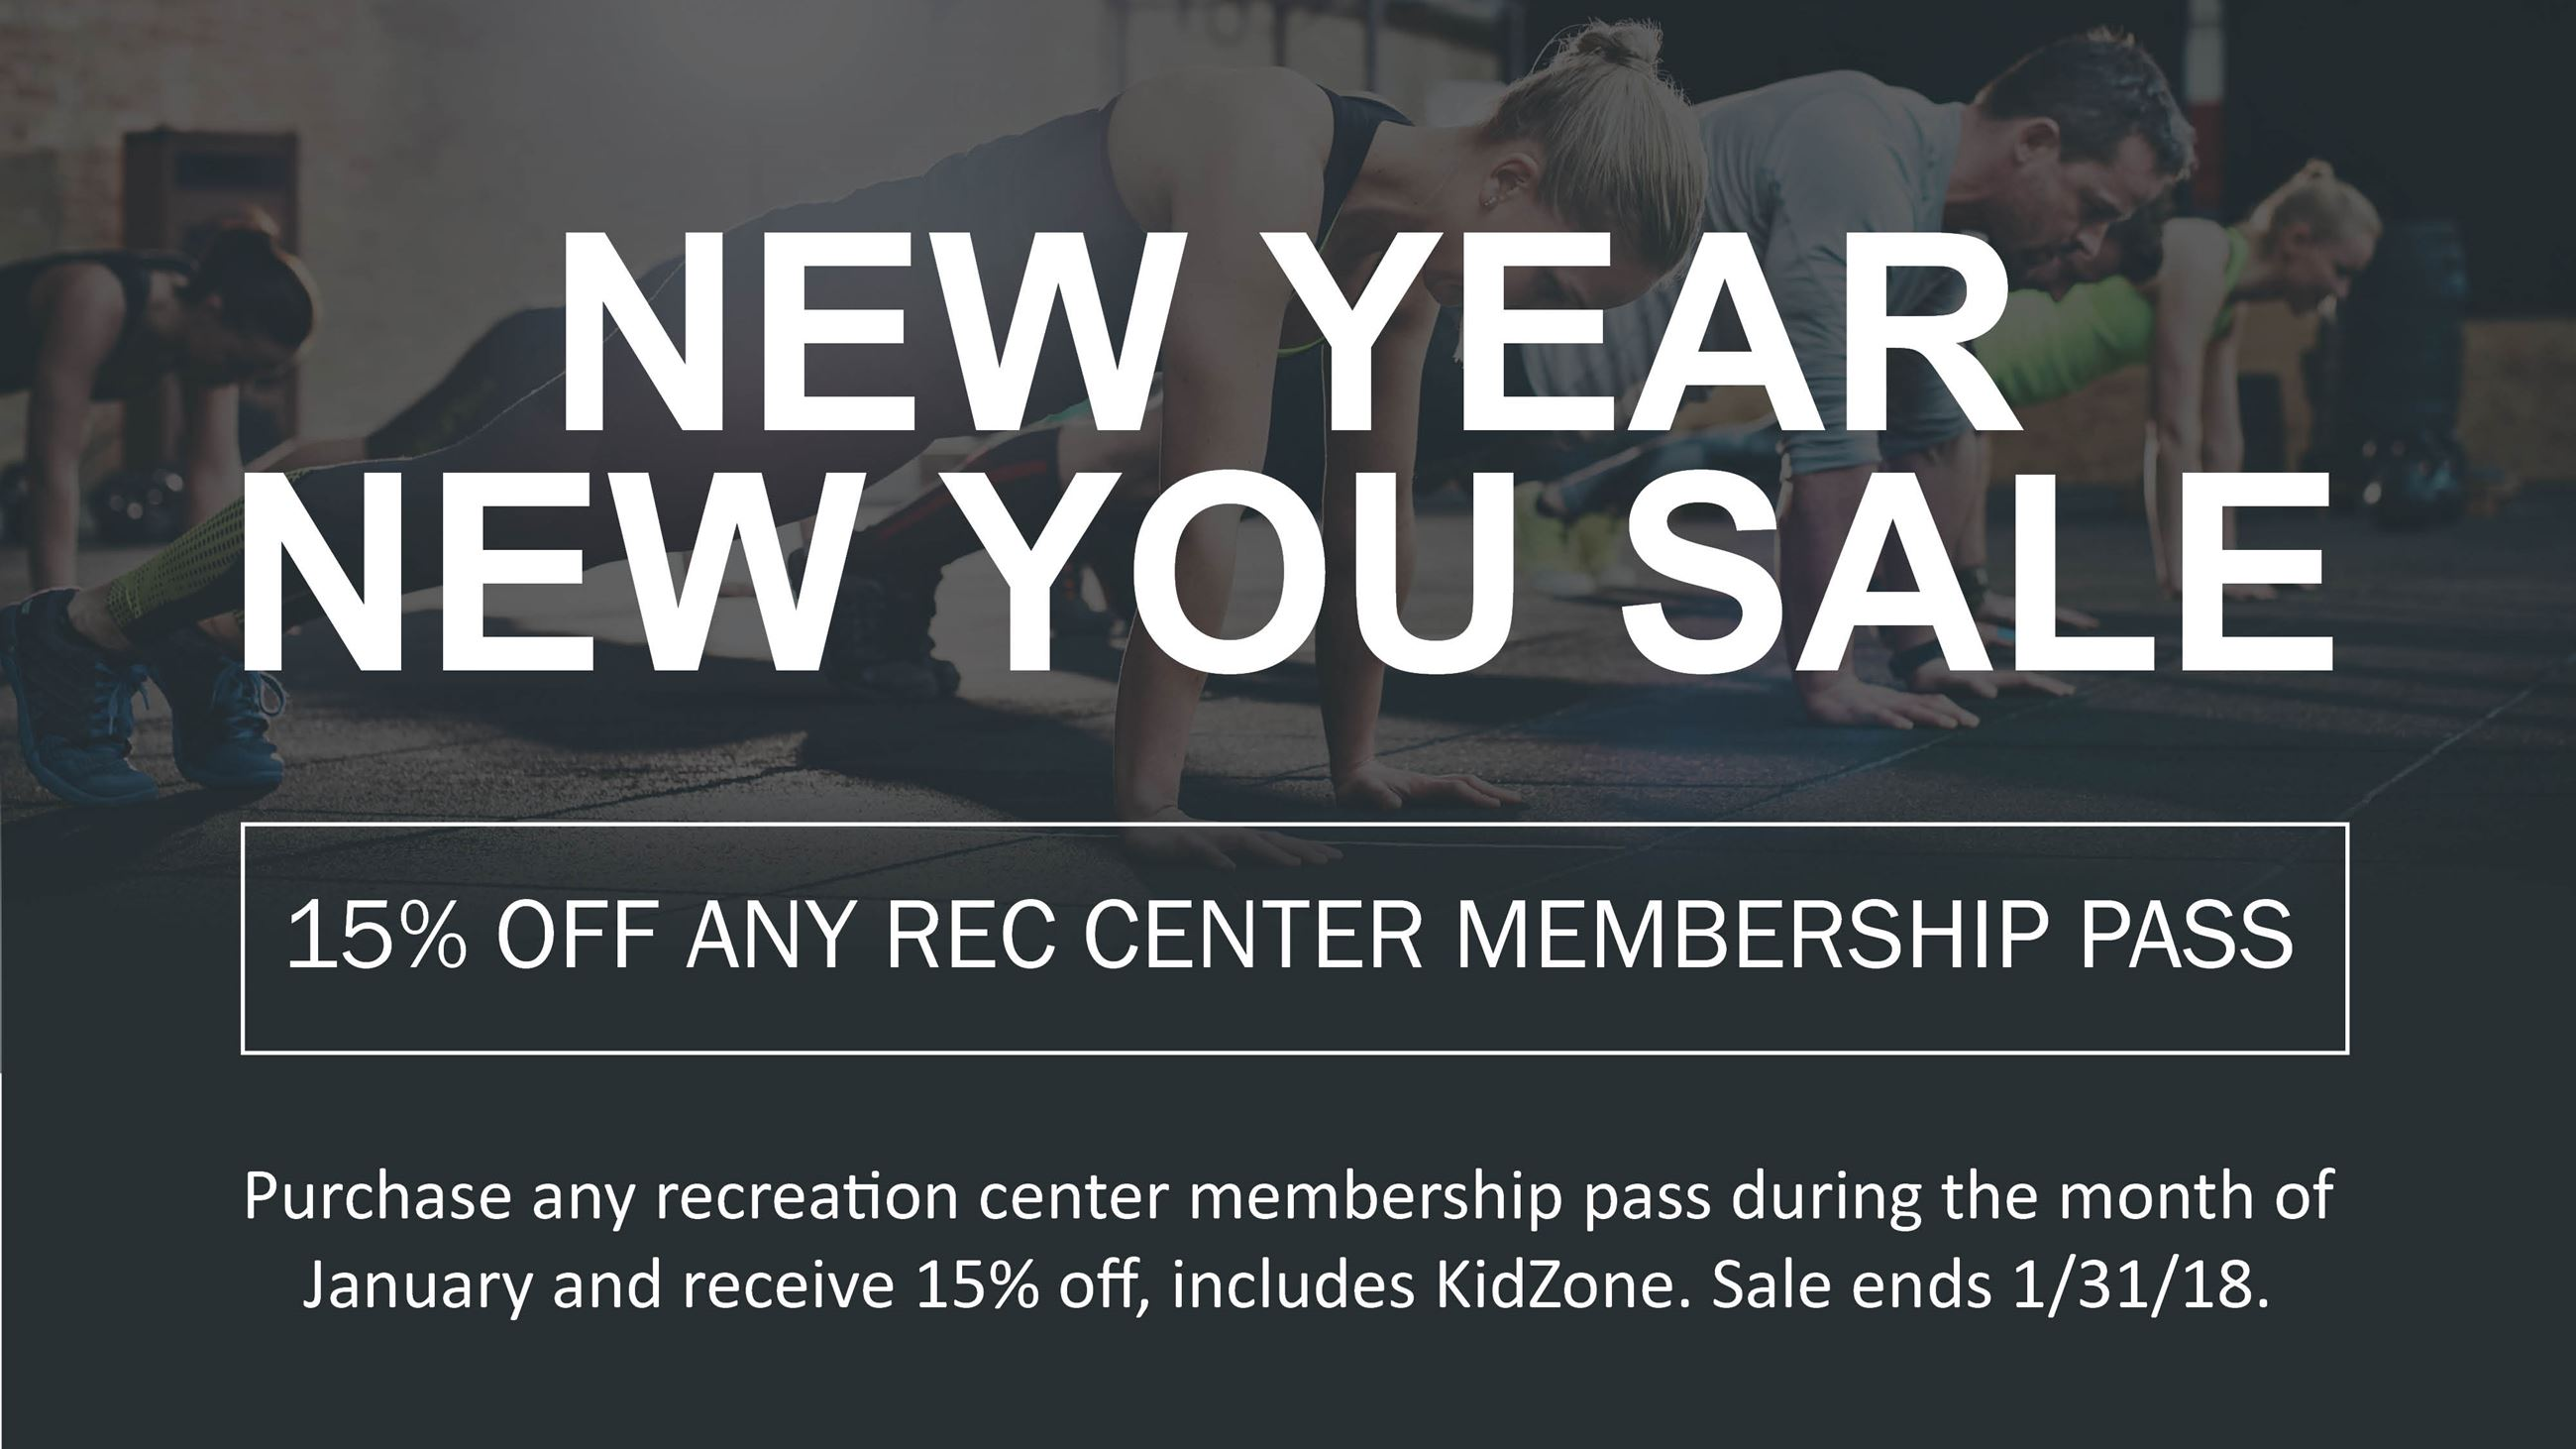 New Year New You Lobby Slide